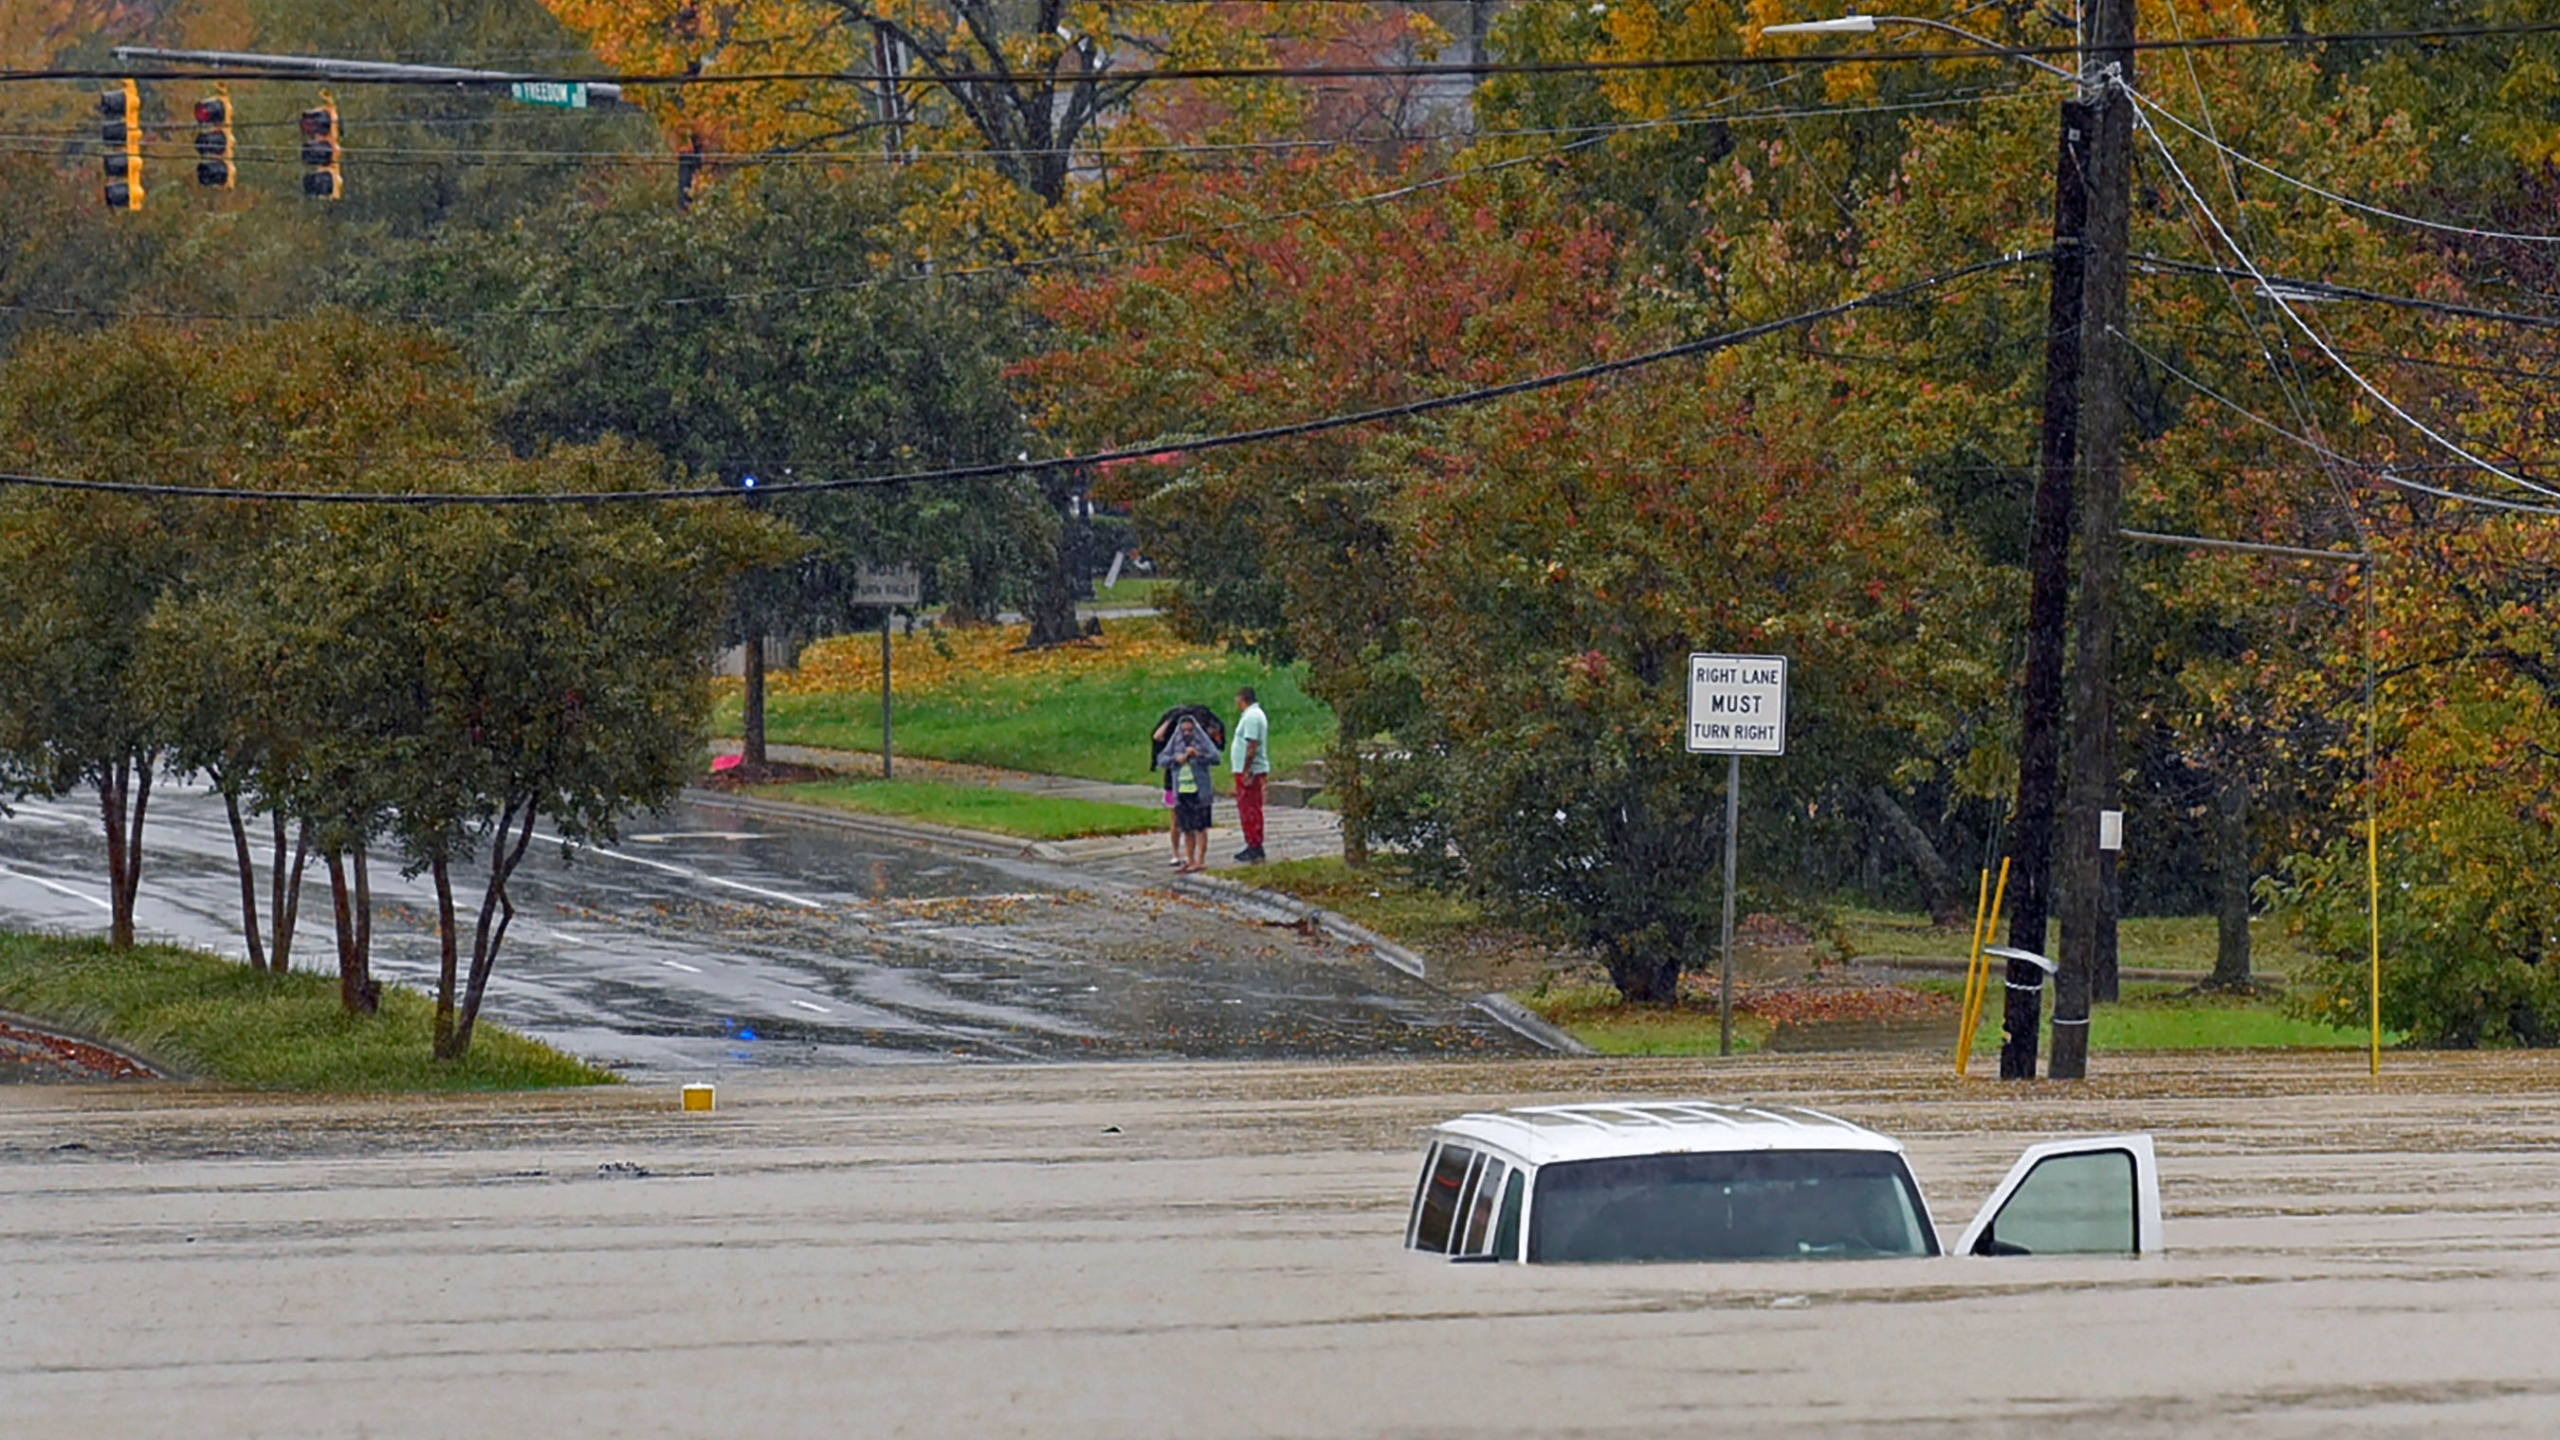 A vehicle is submerged in floodwater on Freedom Drive in Charlotte, N.C., Thursday, Nov. 12, 2020. Tropical Storm Eta dumped blustery rain across north Florida after landfall Thursday morning north of the heavily populated Tampa Bay area, and then sped out into the Atlantic off of the neighboring coasts of Georgia and the Carolinas. (Jeff Siner/The Charlotte Observer via AP)